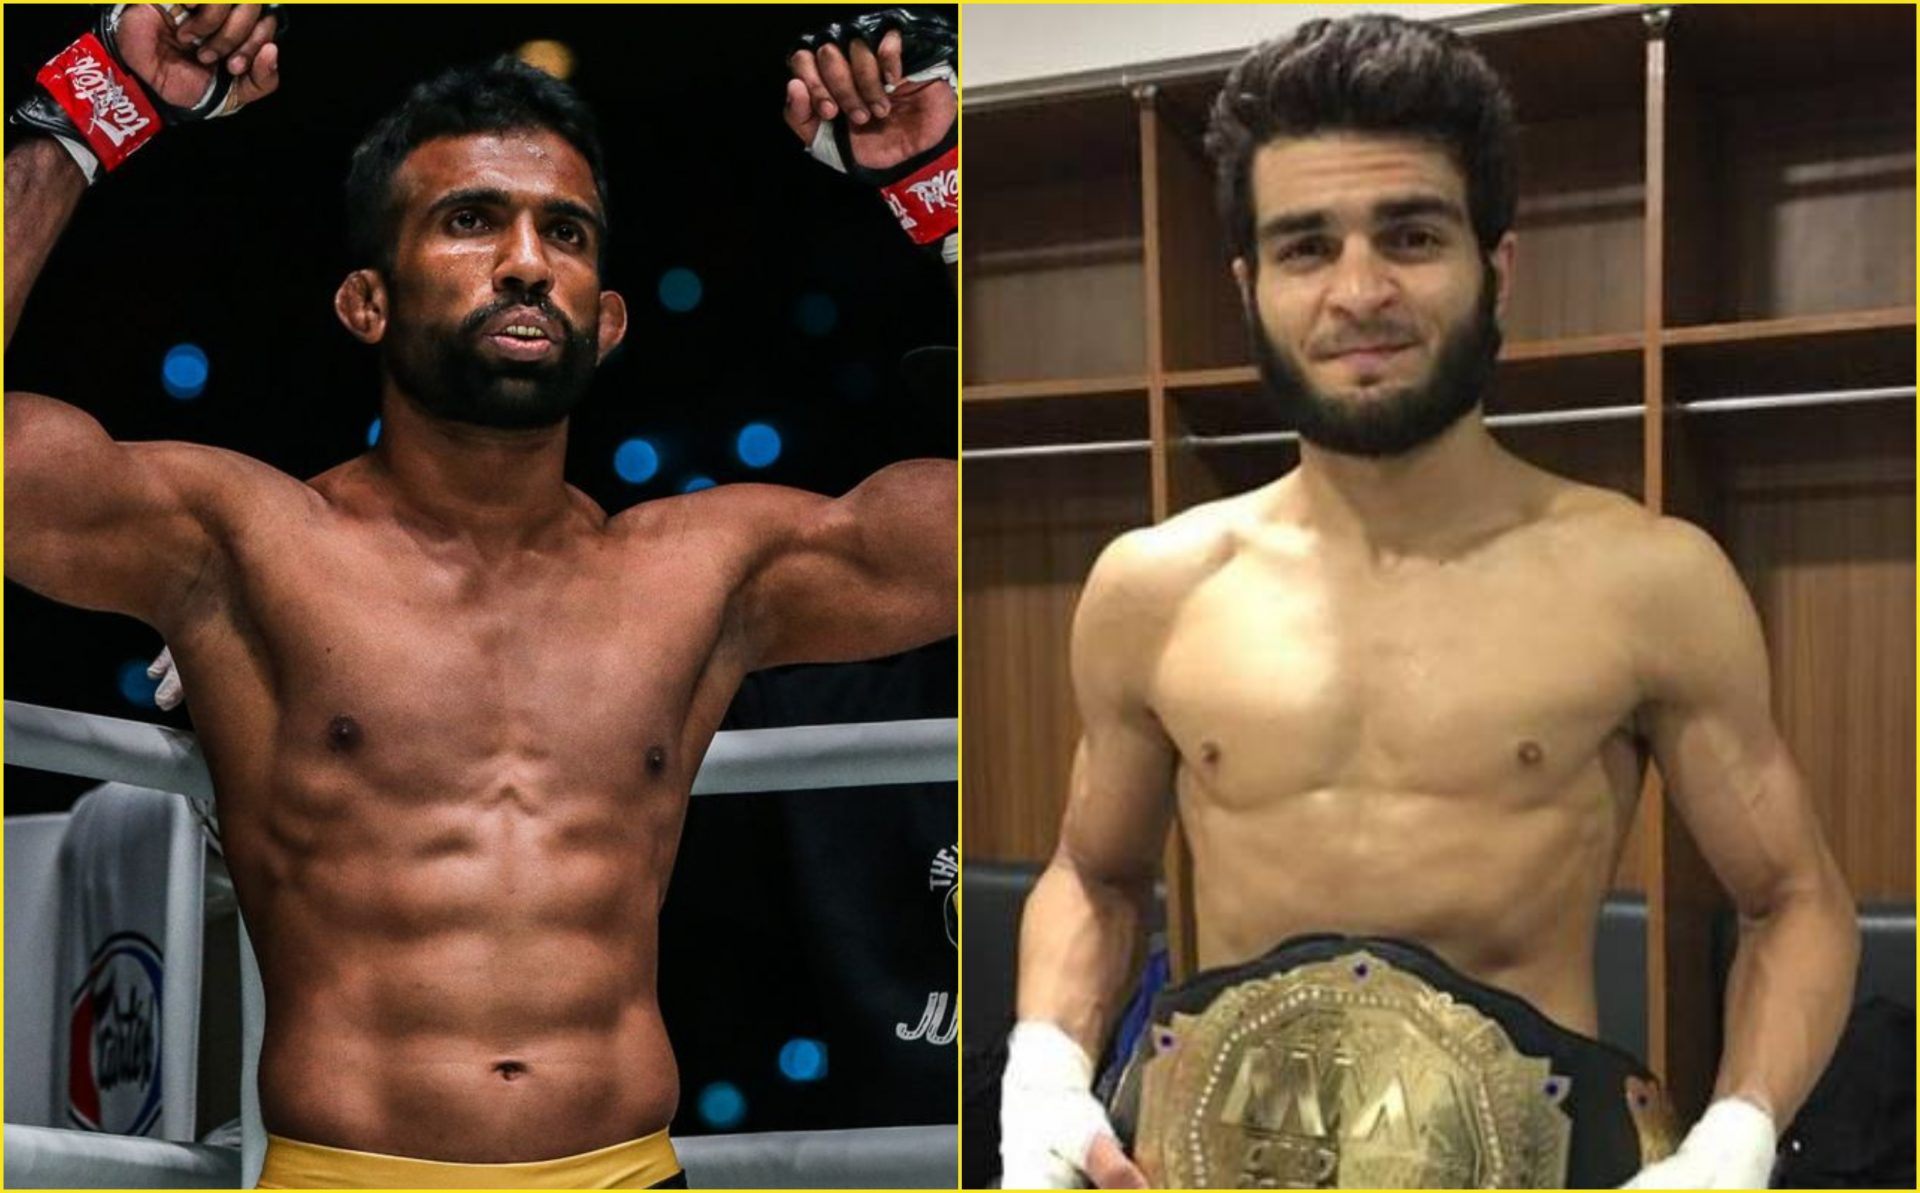 Rahul Raju: I Will Make Indian Fans Proud In Fight Against Mujtaba - Rahul Raju